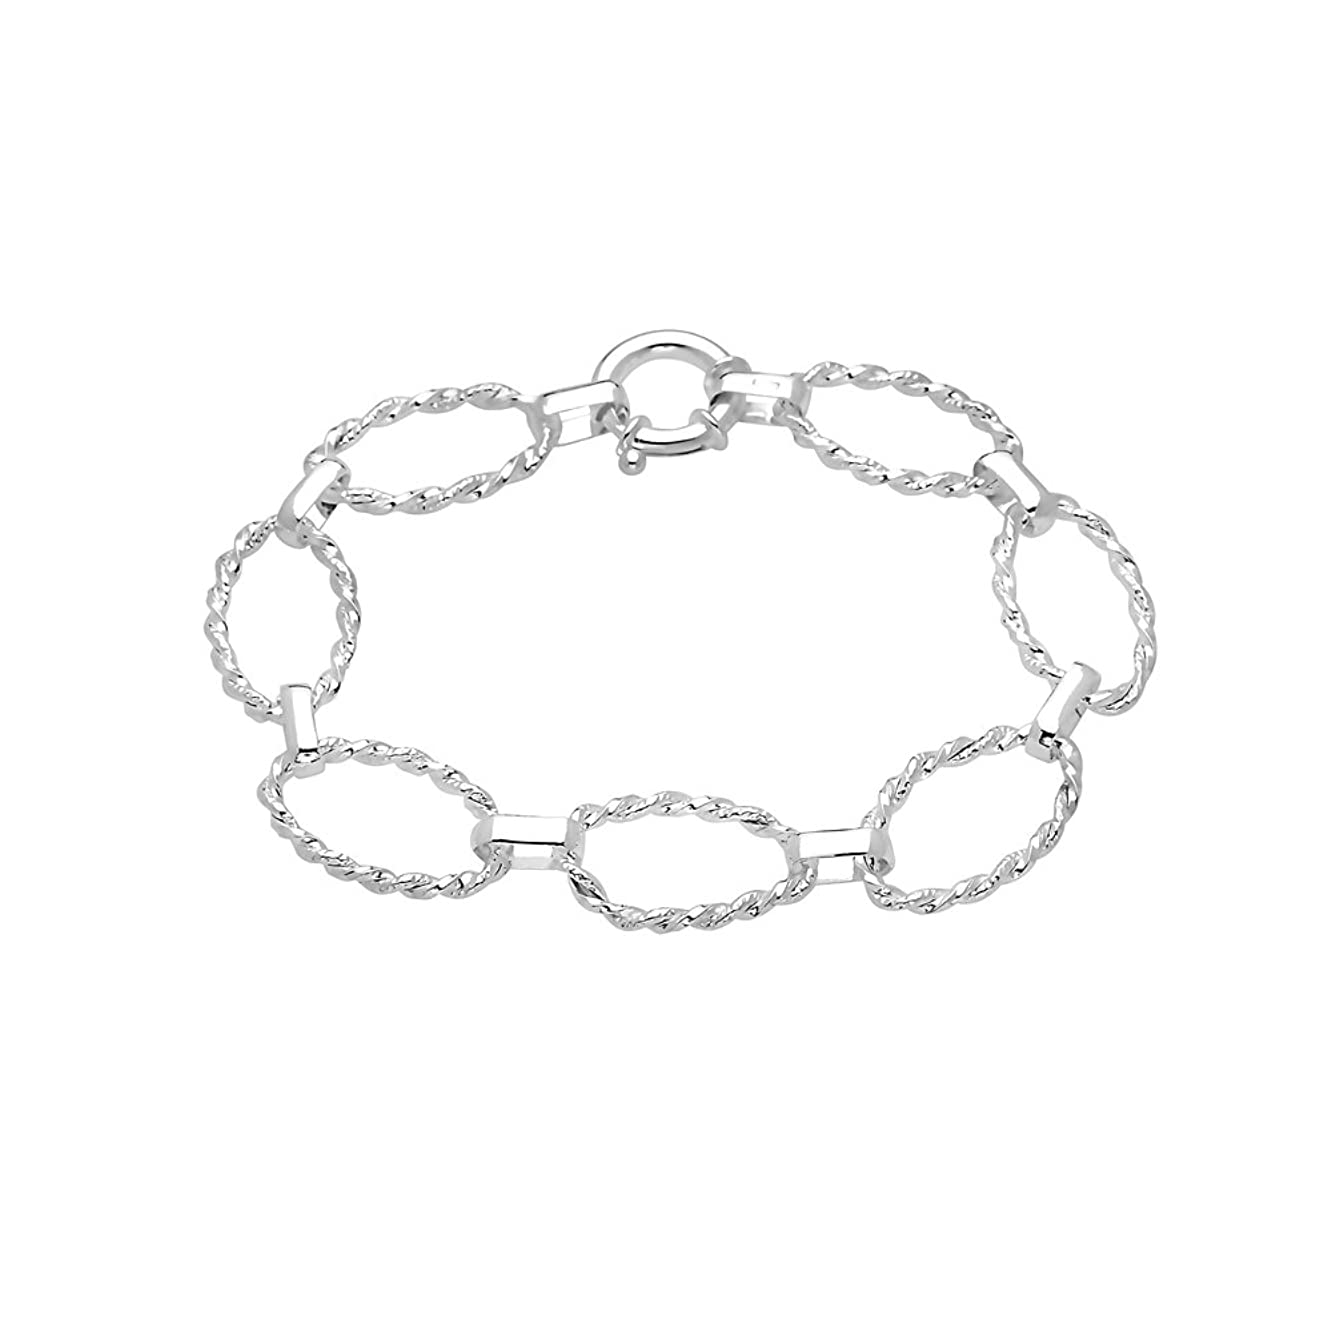 Pori Jewelers Sterling Silver Twisted Oval Chain Bracelet - Made in Italy - 7.5